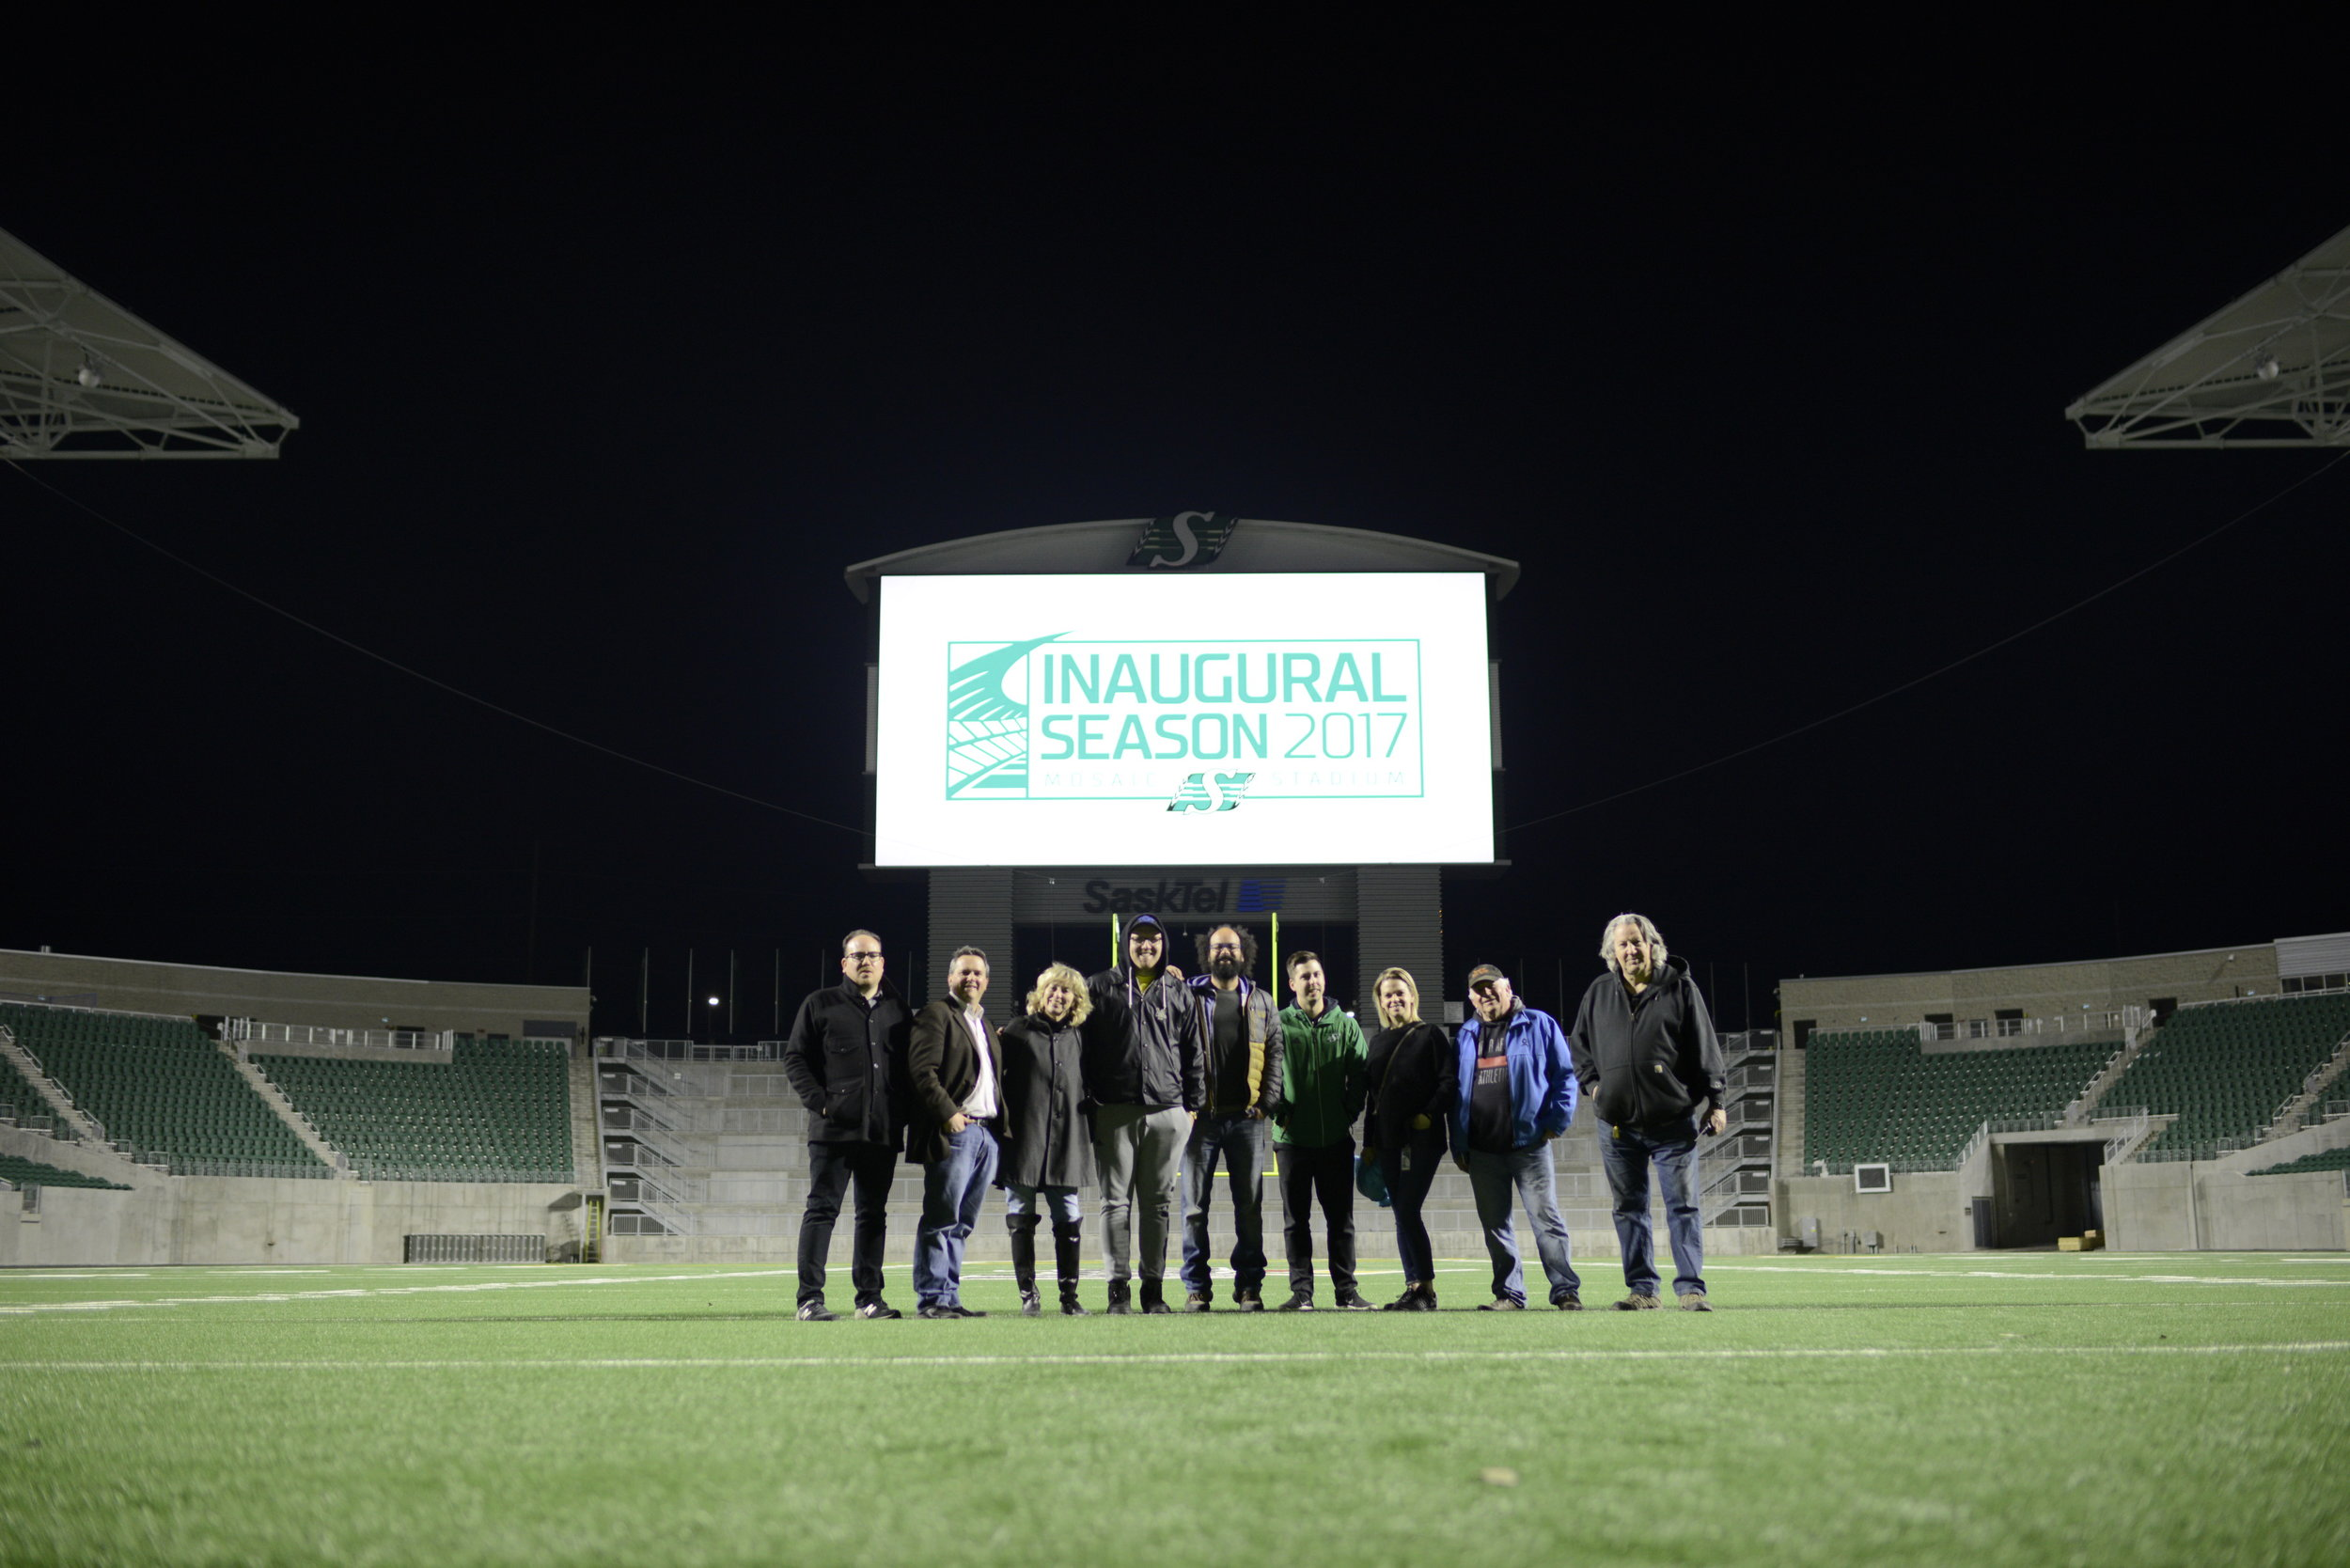 From left to right: Ante Kovac (Director), Matt Gillespie (Joe Media CEO), Karen Sveinson (Producer), Corey McLean (Best Boy/Genny Op),   Adrian Traquair (Art Department), Gregg Sauter (VP of Marketing with Saskatchewan Roughriders), Miriam Johnson (Director of Marketing with Saskatchewan Roughriders), Murray MacDonald (Production Manager), Peter LaRocque (Gaffer)